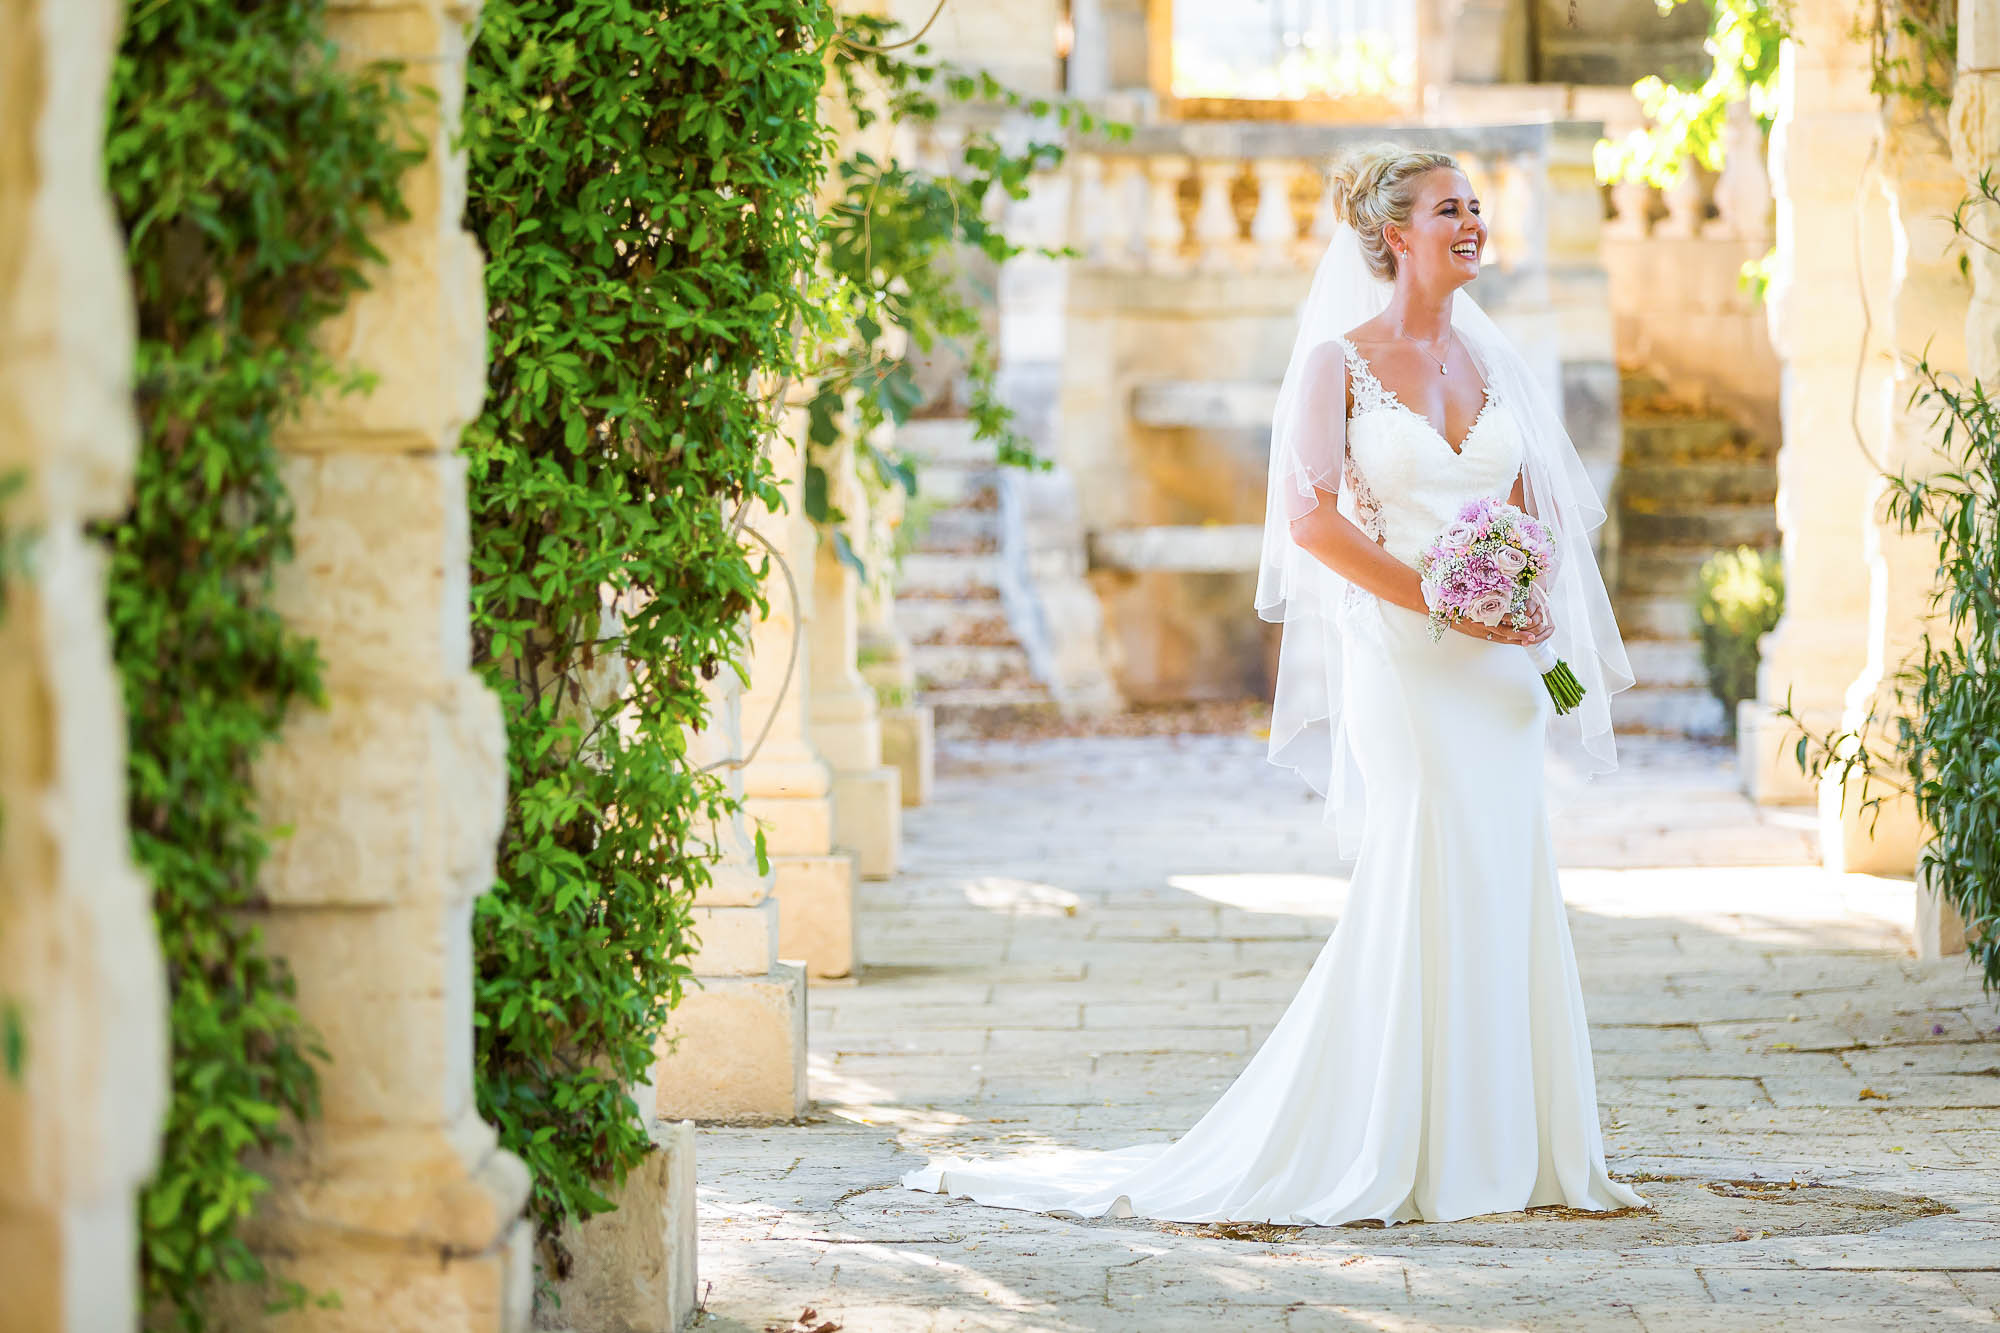 Portrait of the bride in the gardens of her wedding ceremony venue. Photo by destination photographer Elliot Nichol.